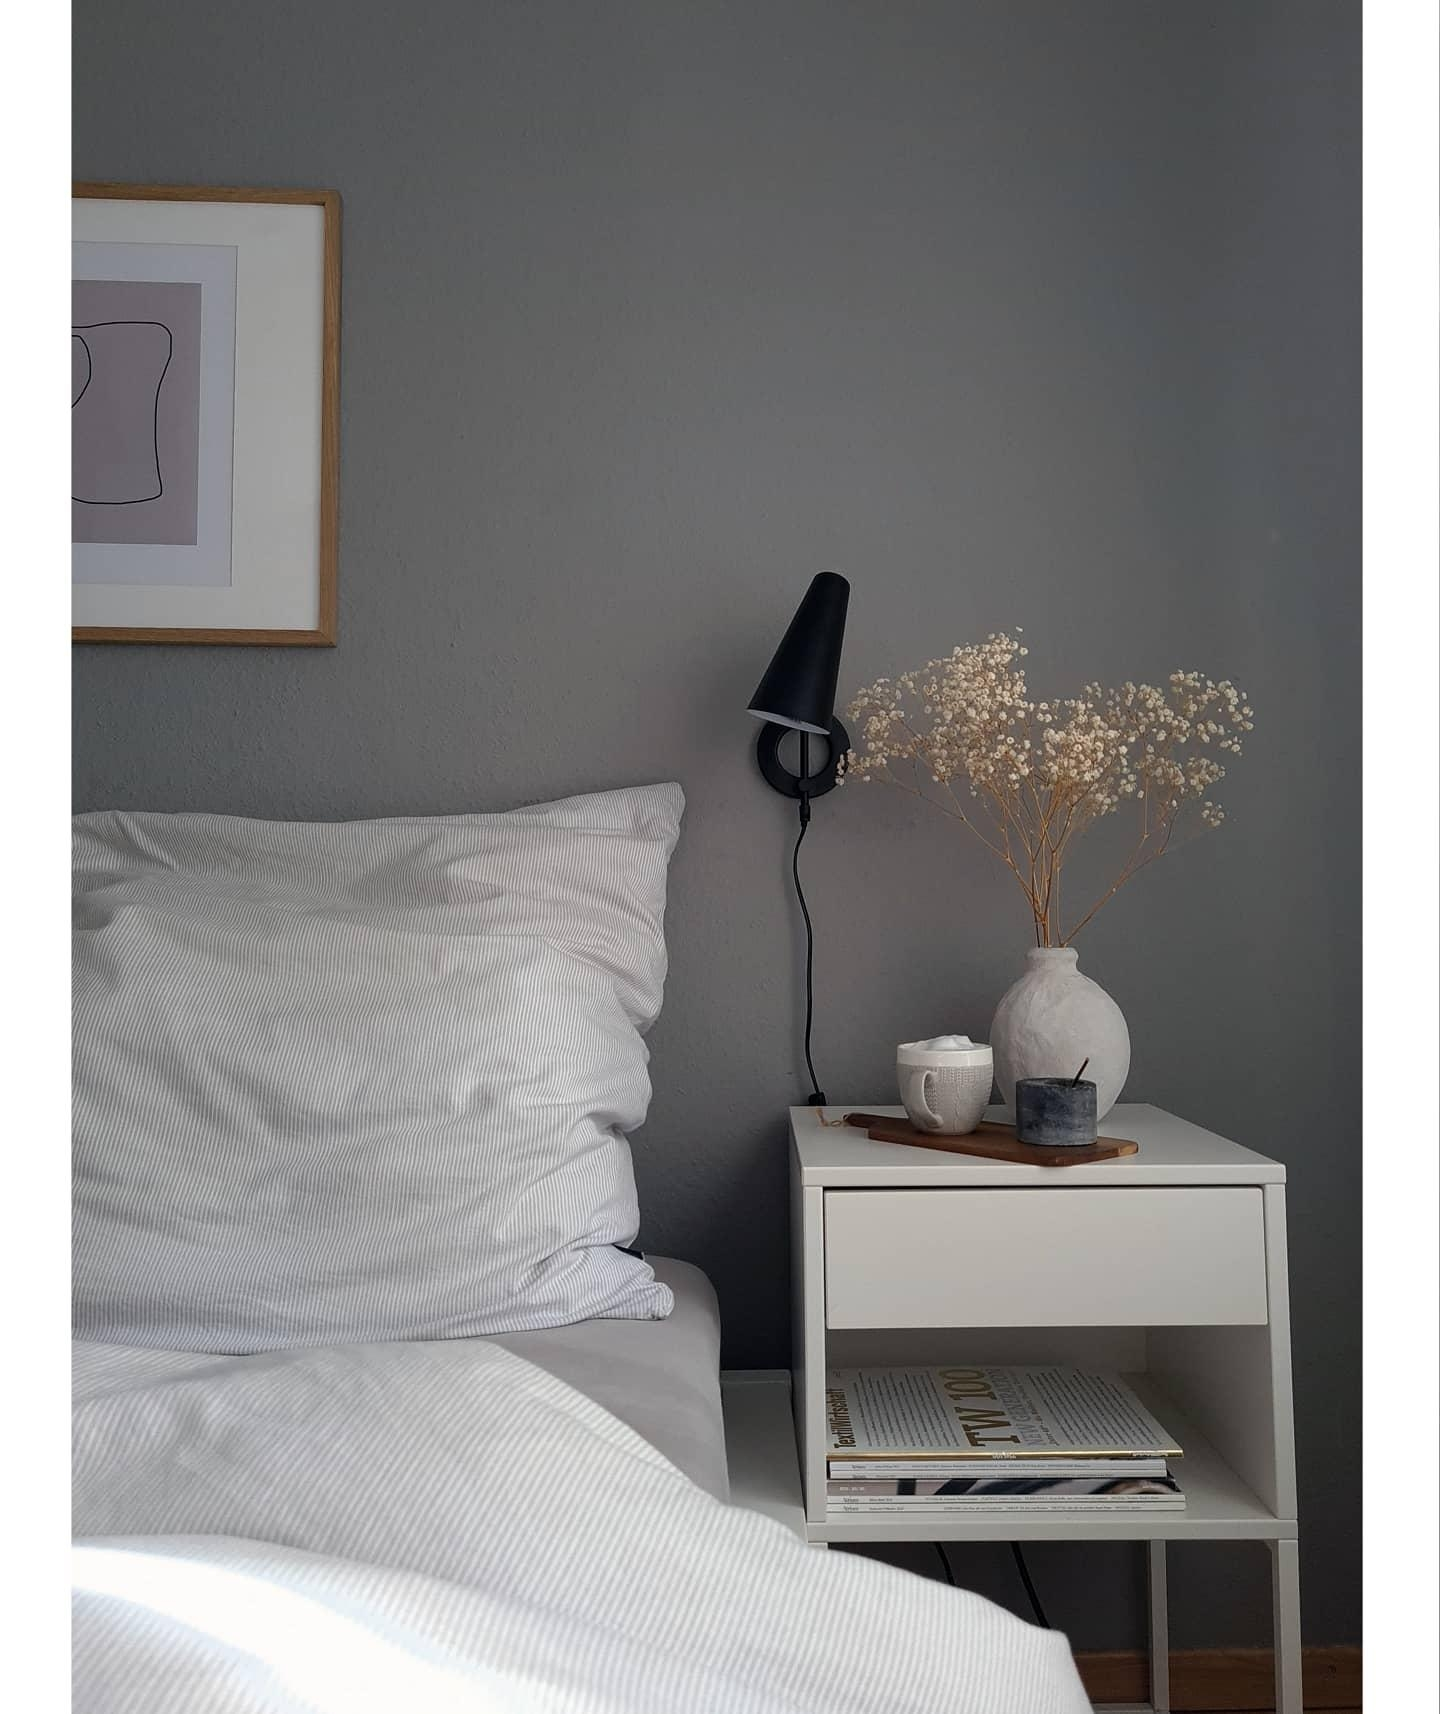 Stay in bed... and happy weekend 